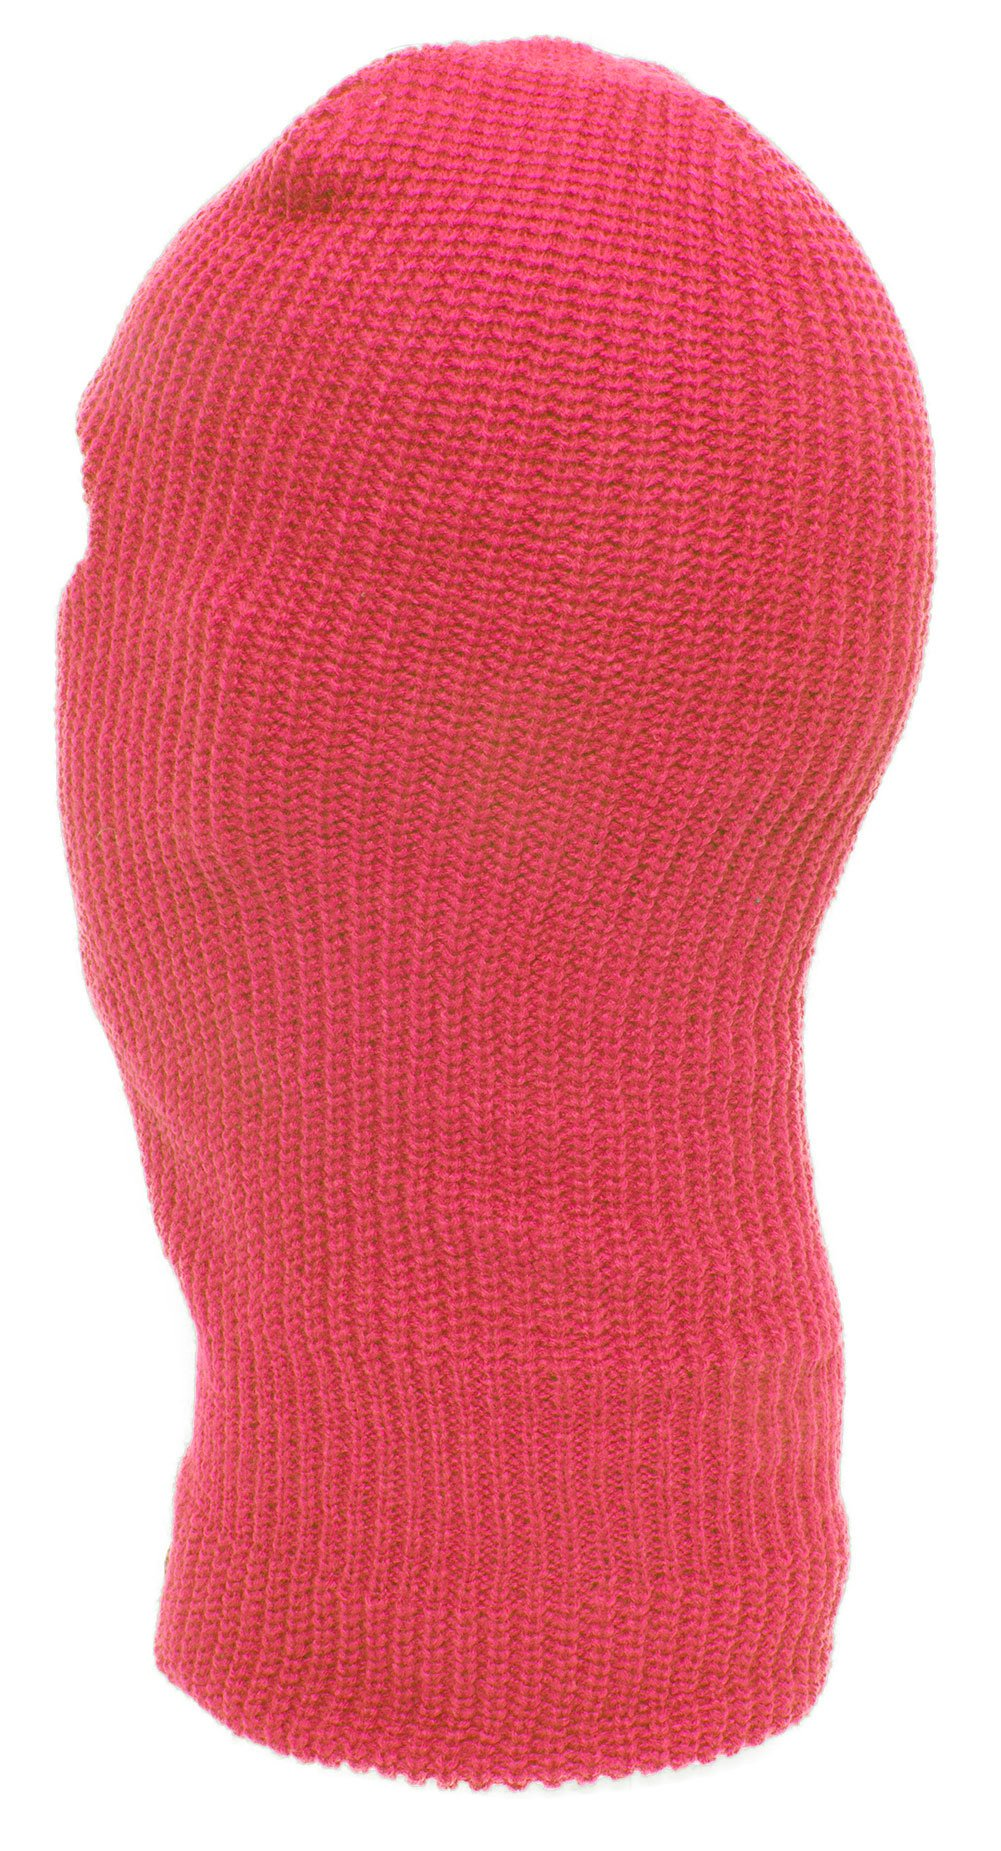 3 Hole Ski Mask Hot Pink, Sugar Skull by Hollywood (Image #3)